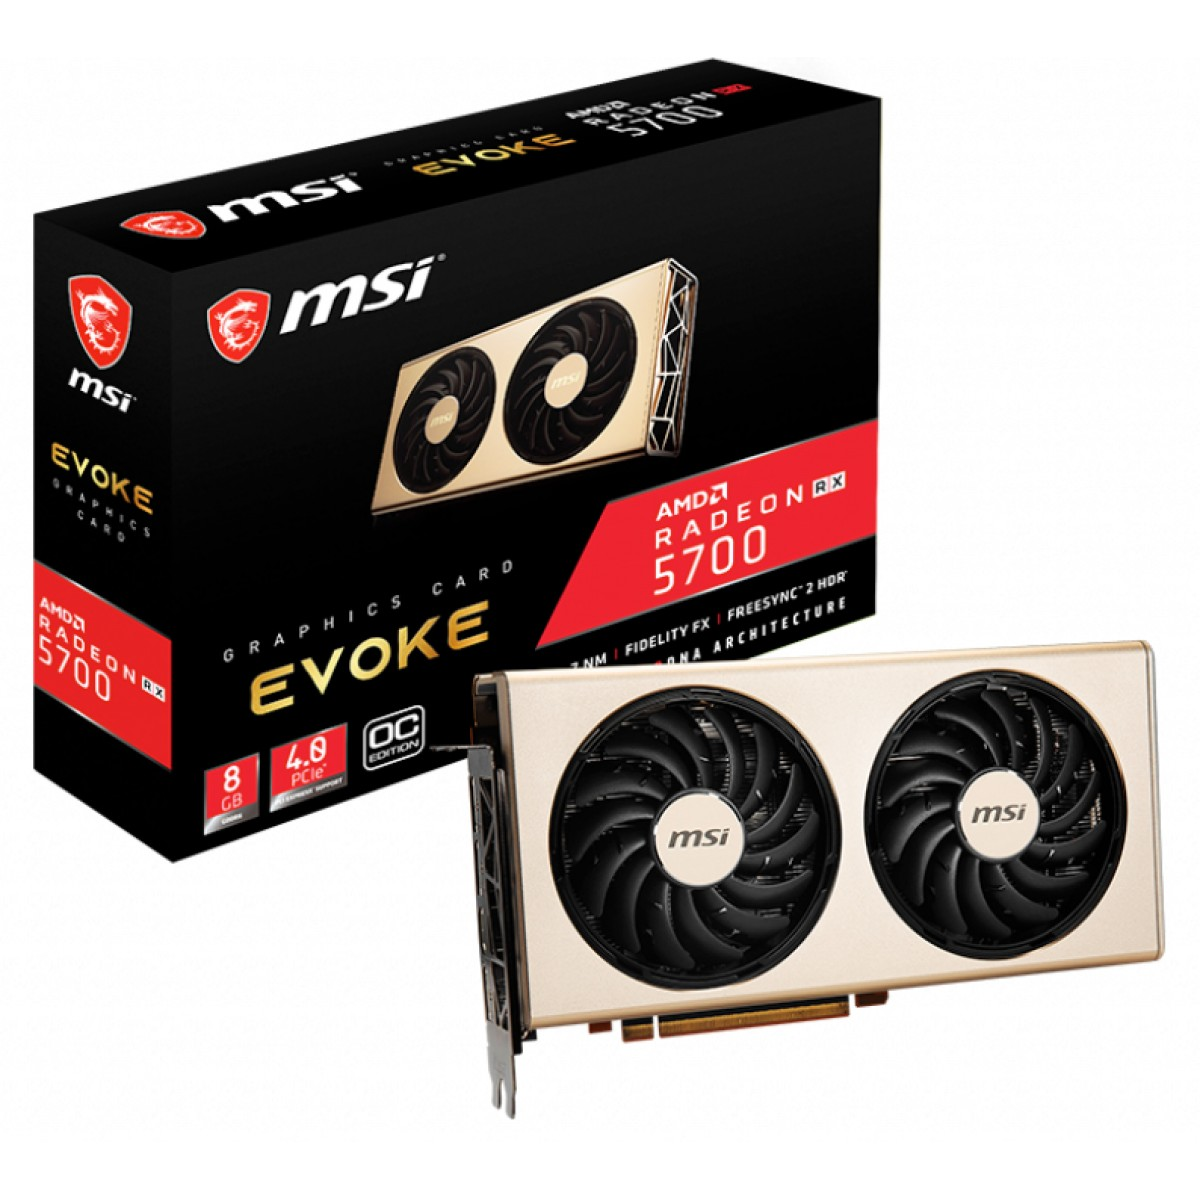 Placa de vídeo RX 5700 Evoke